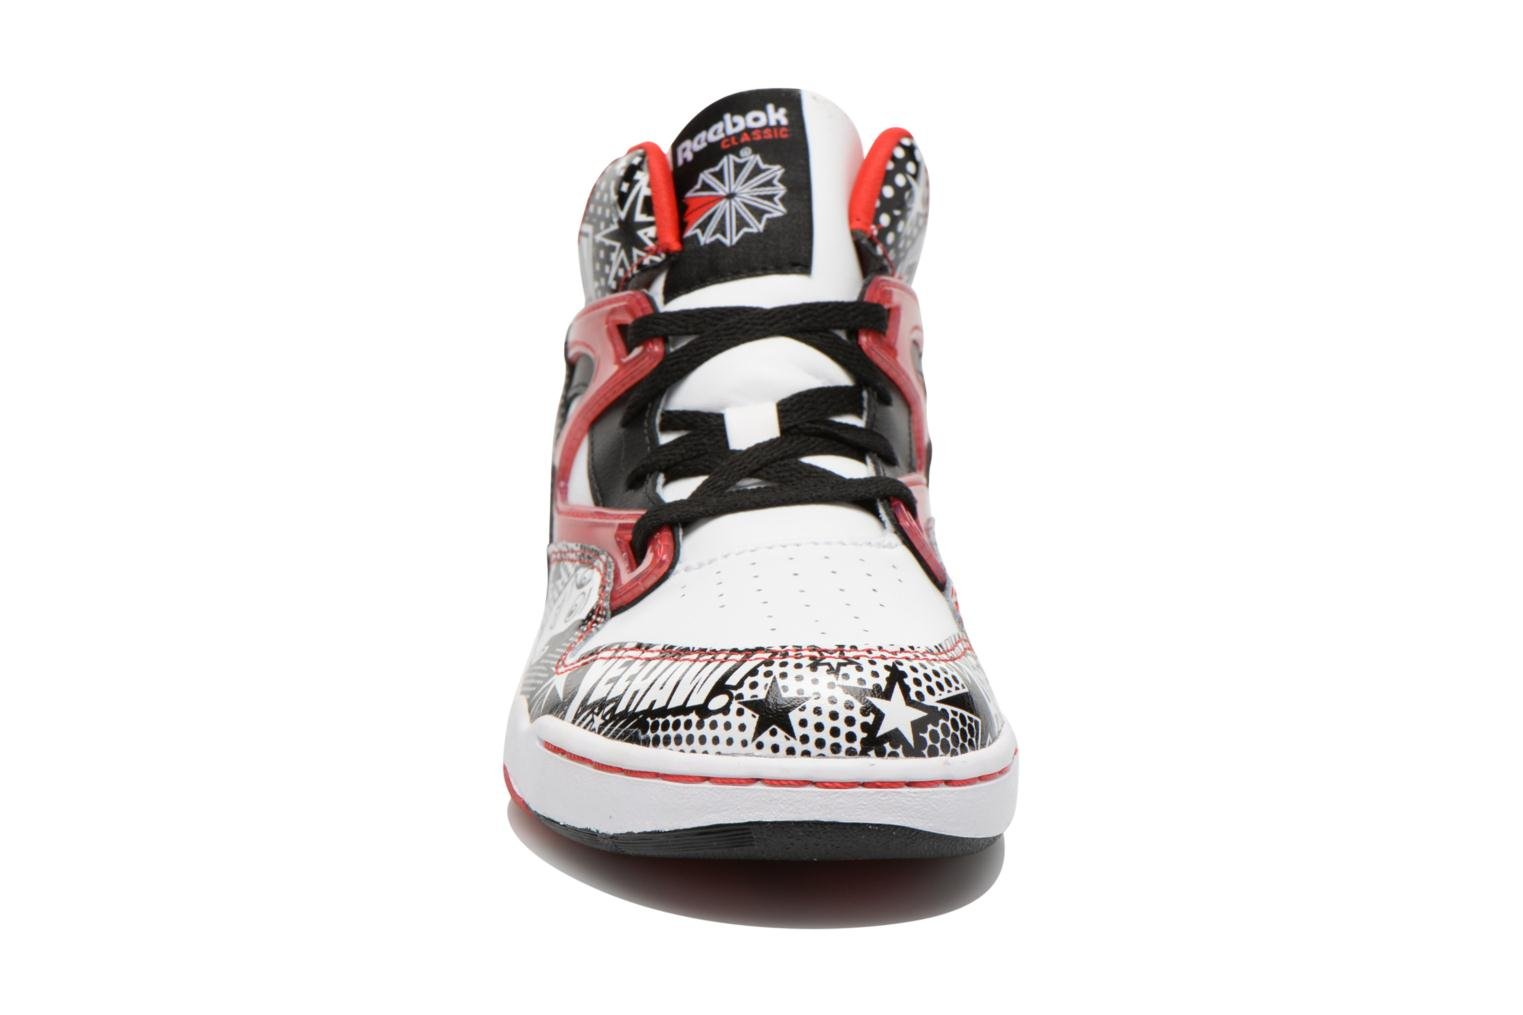 Pixar Pump Omni Jr Black Red Rush White